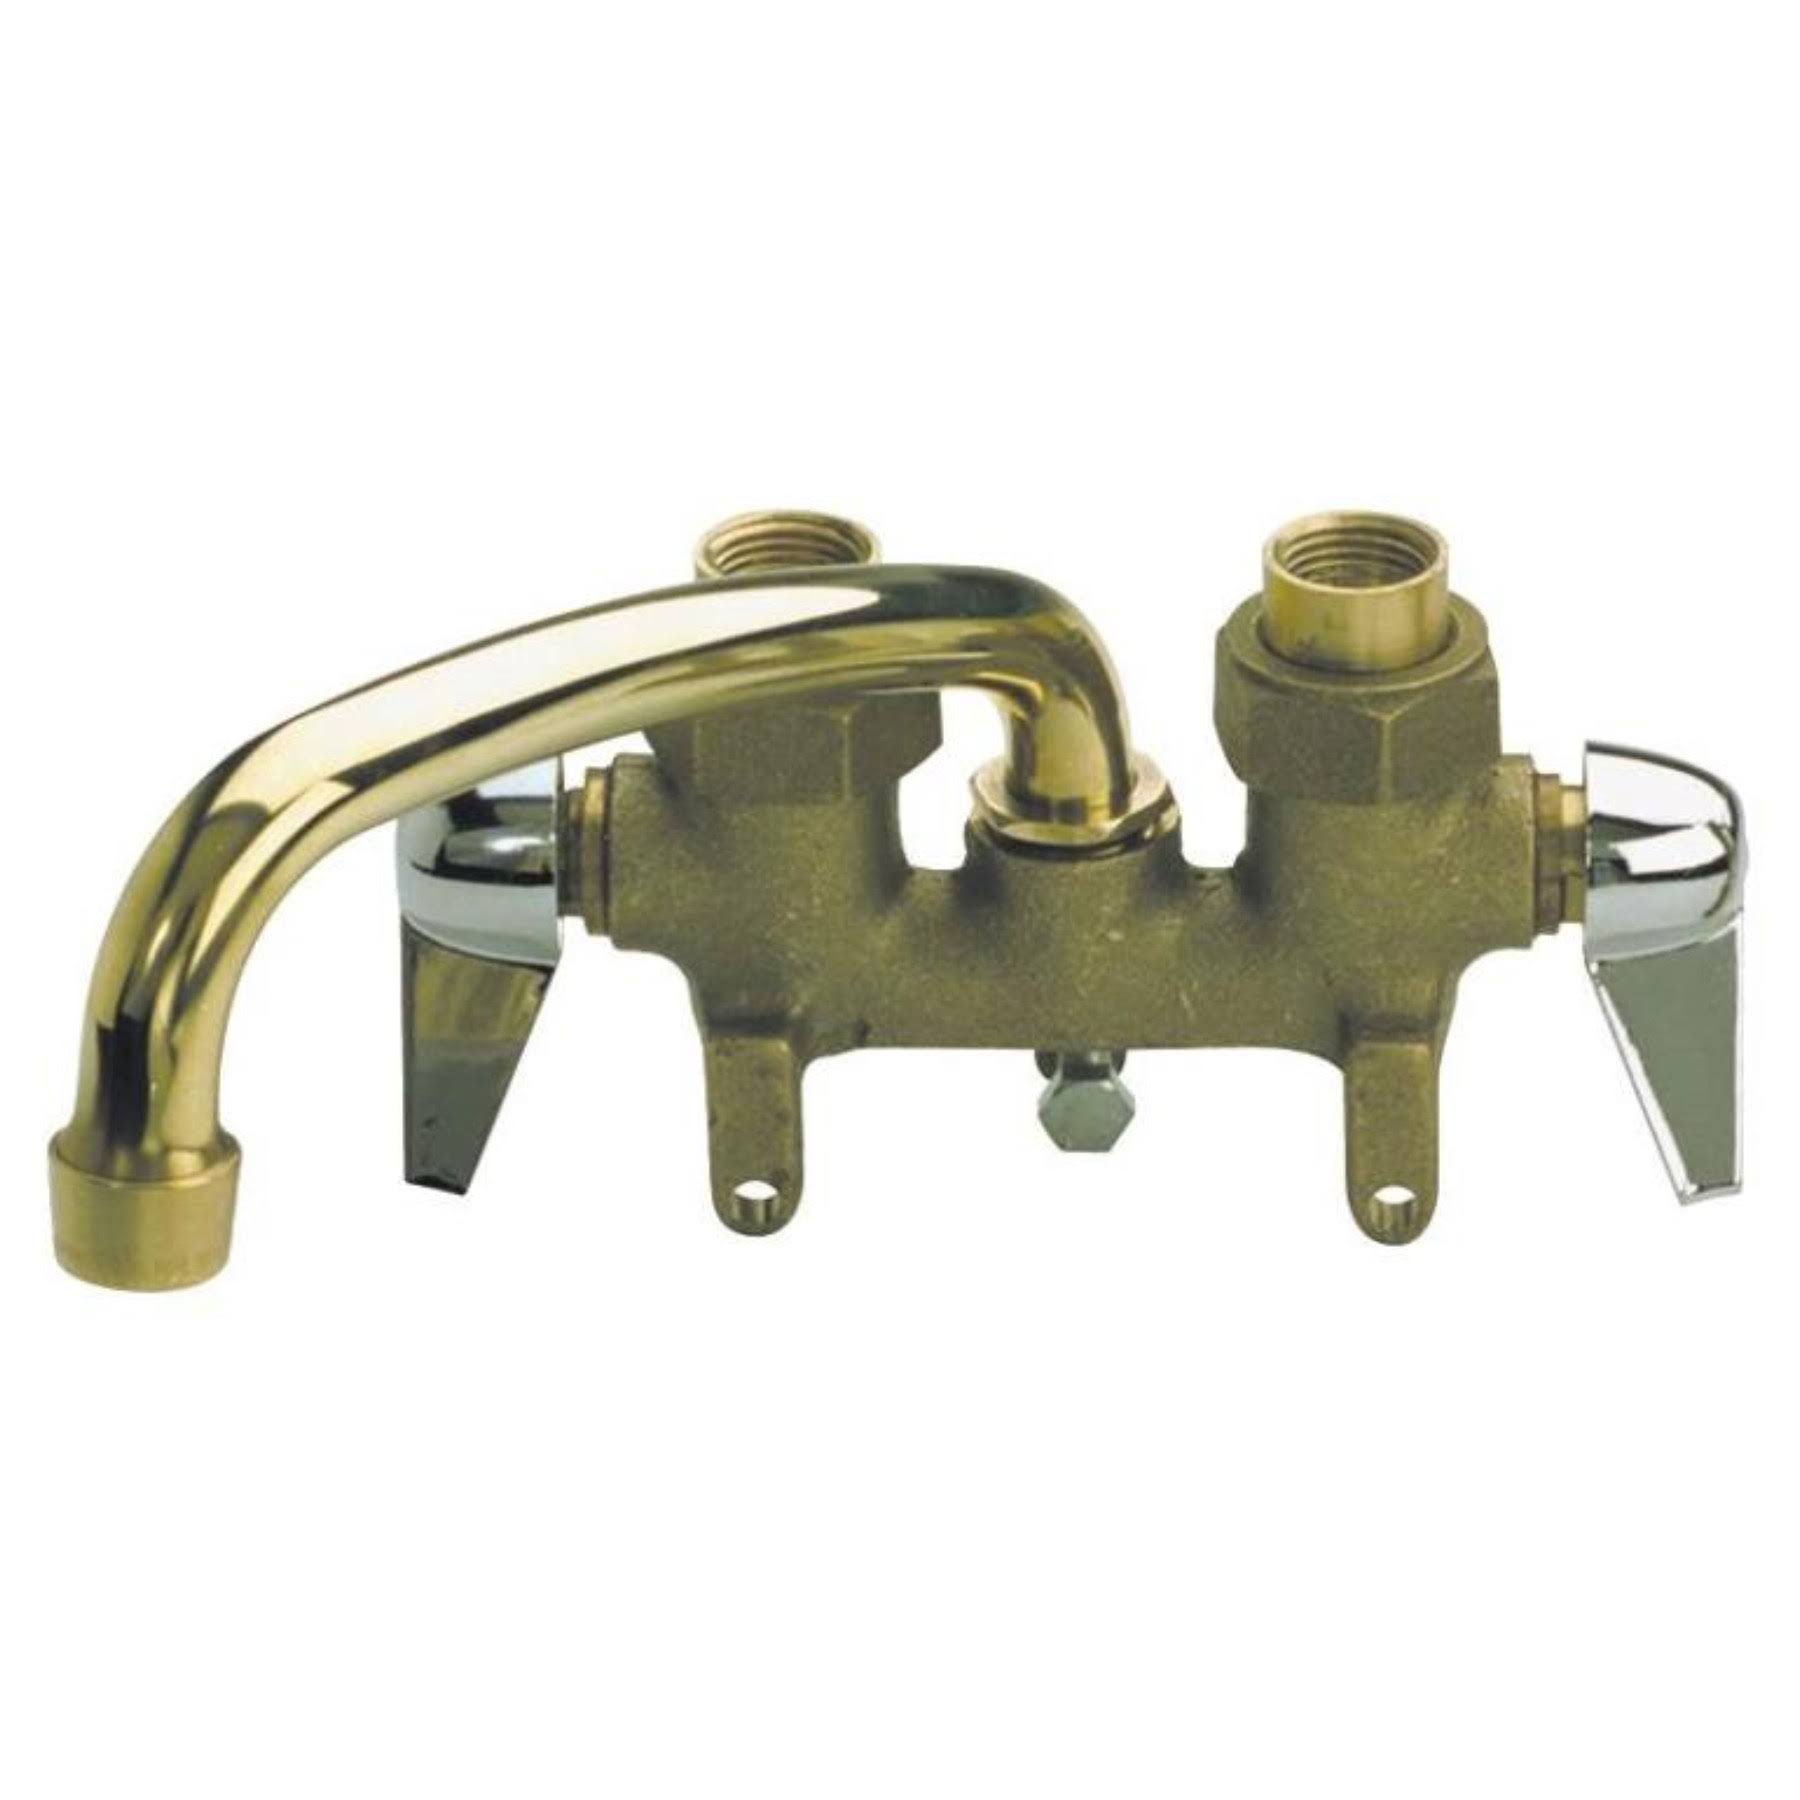 B & K Industries Laundry Tray Faucet - 2 Handle, Brass